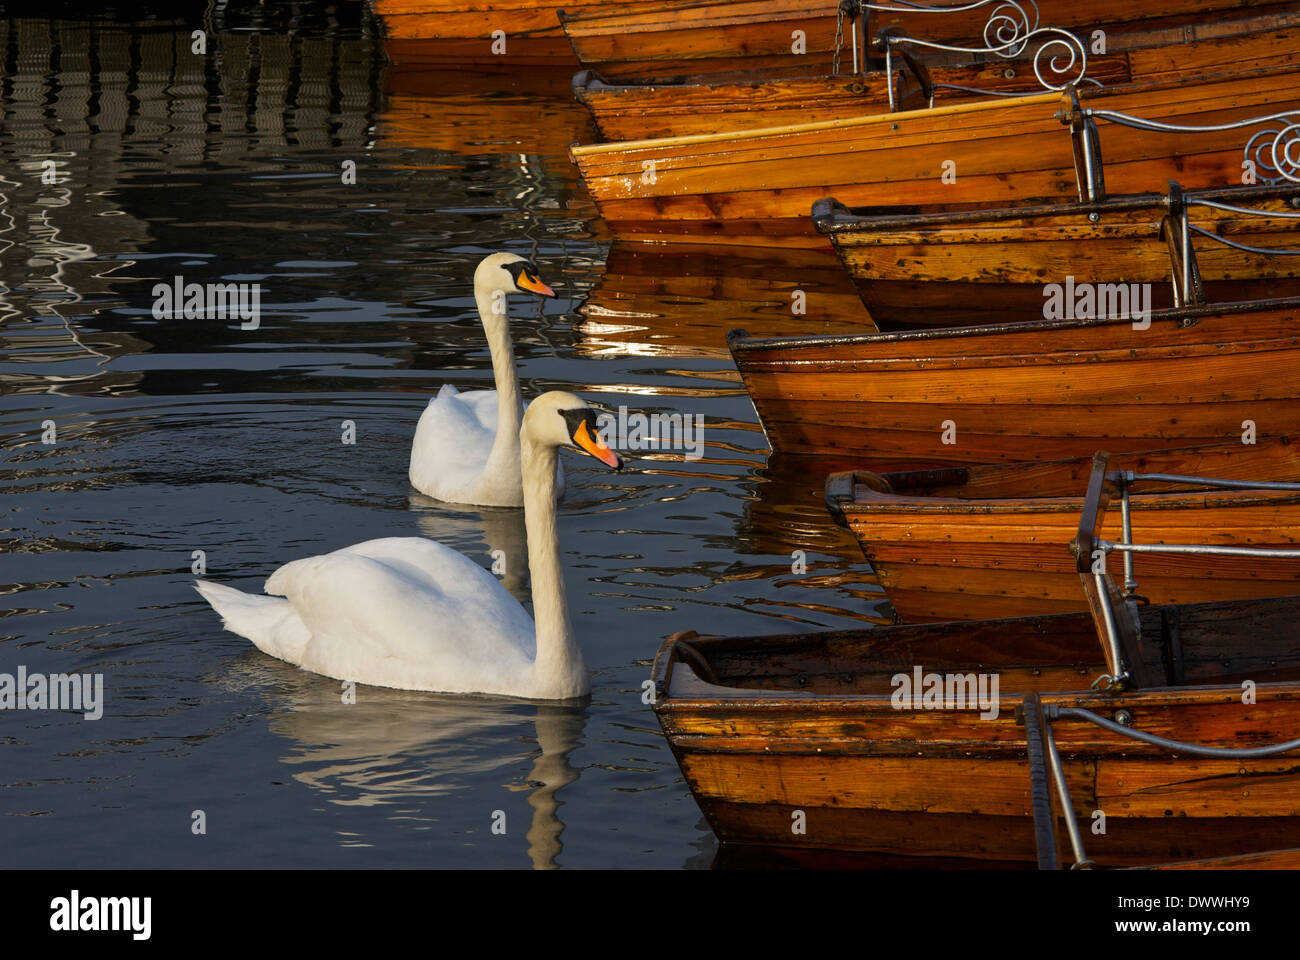 Pair of mute swans in Bowness Bay, Lake Windermere, Lake District National Park, Cumbria, England UK - Stock Image